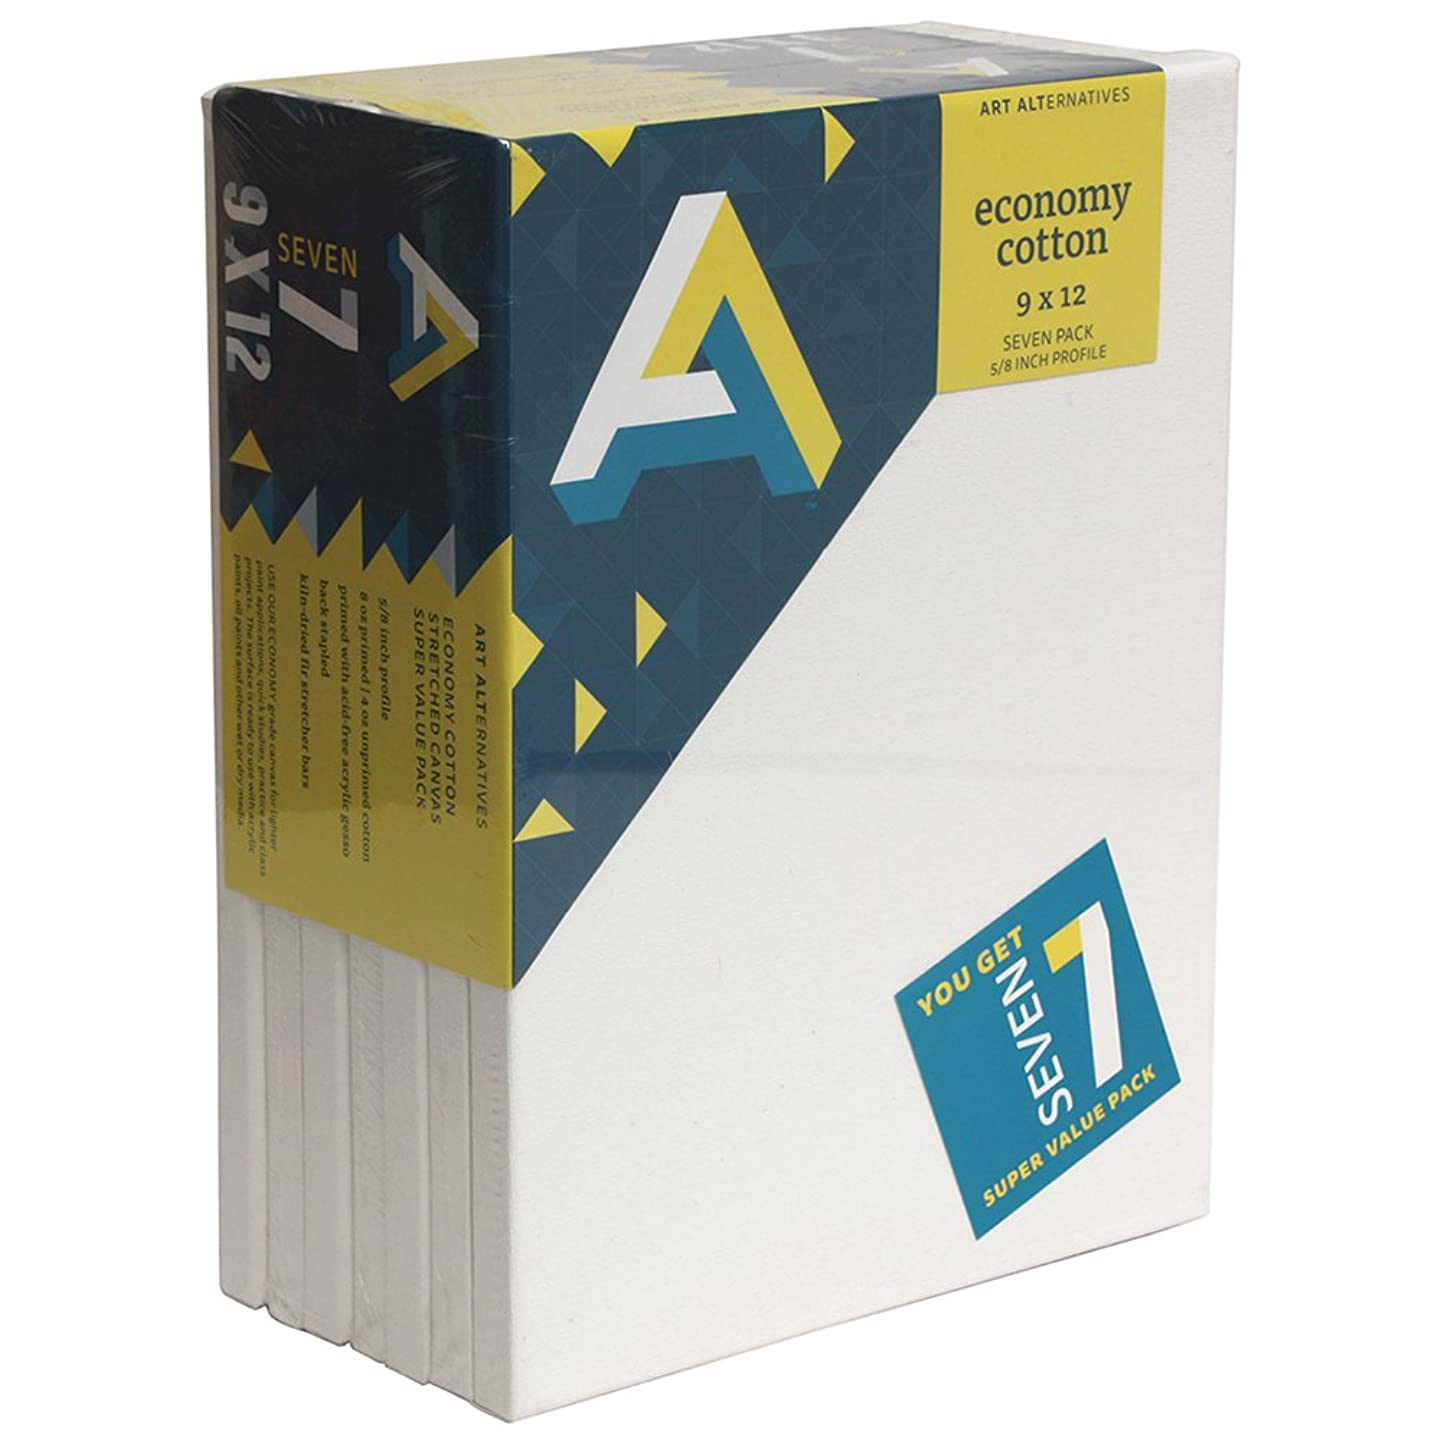 Art Alternatives stretched  White Canvas Super Value Pack-9 x 12 inches-Pack of 7